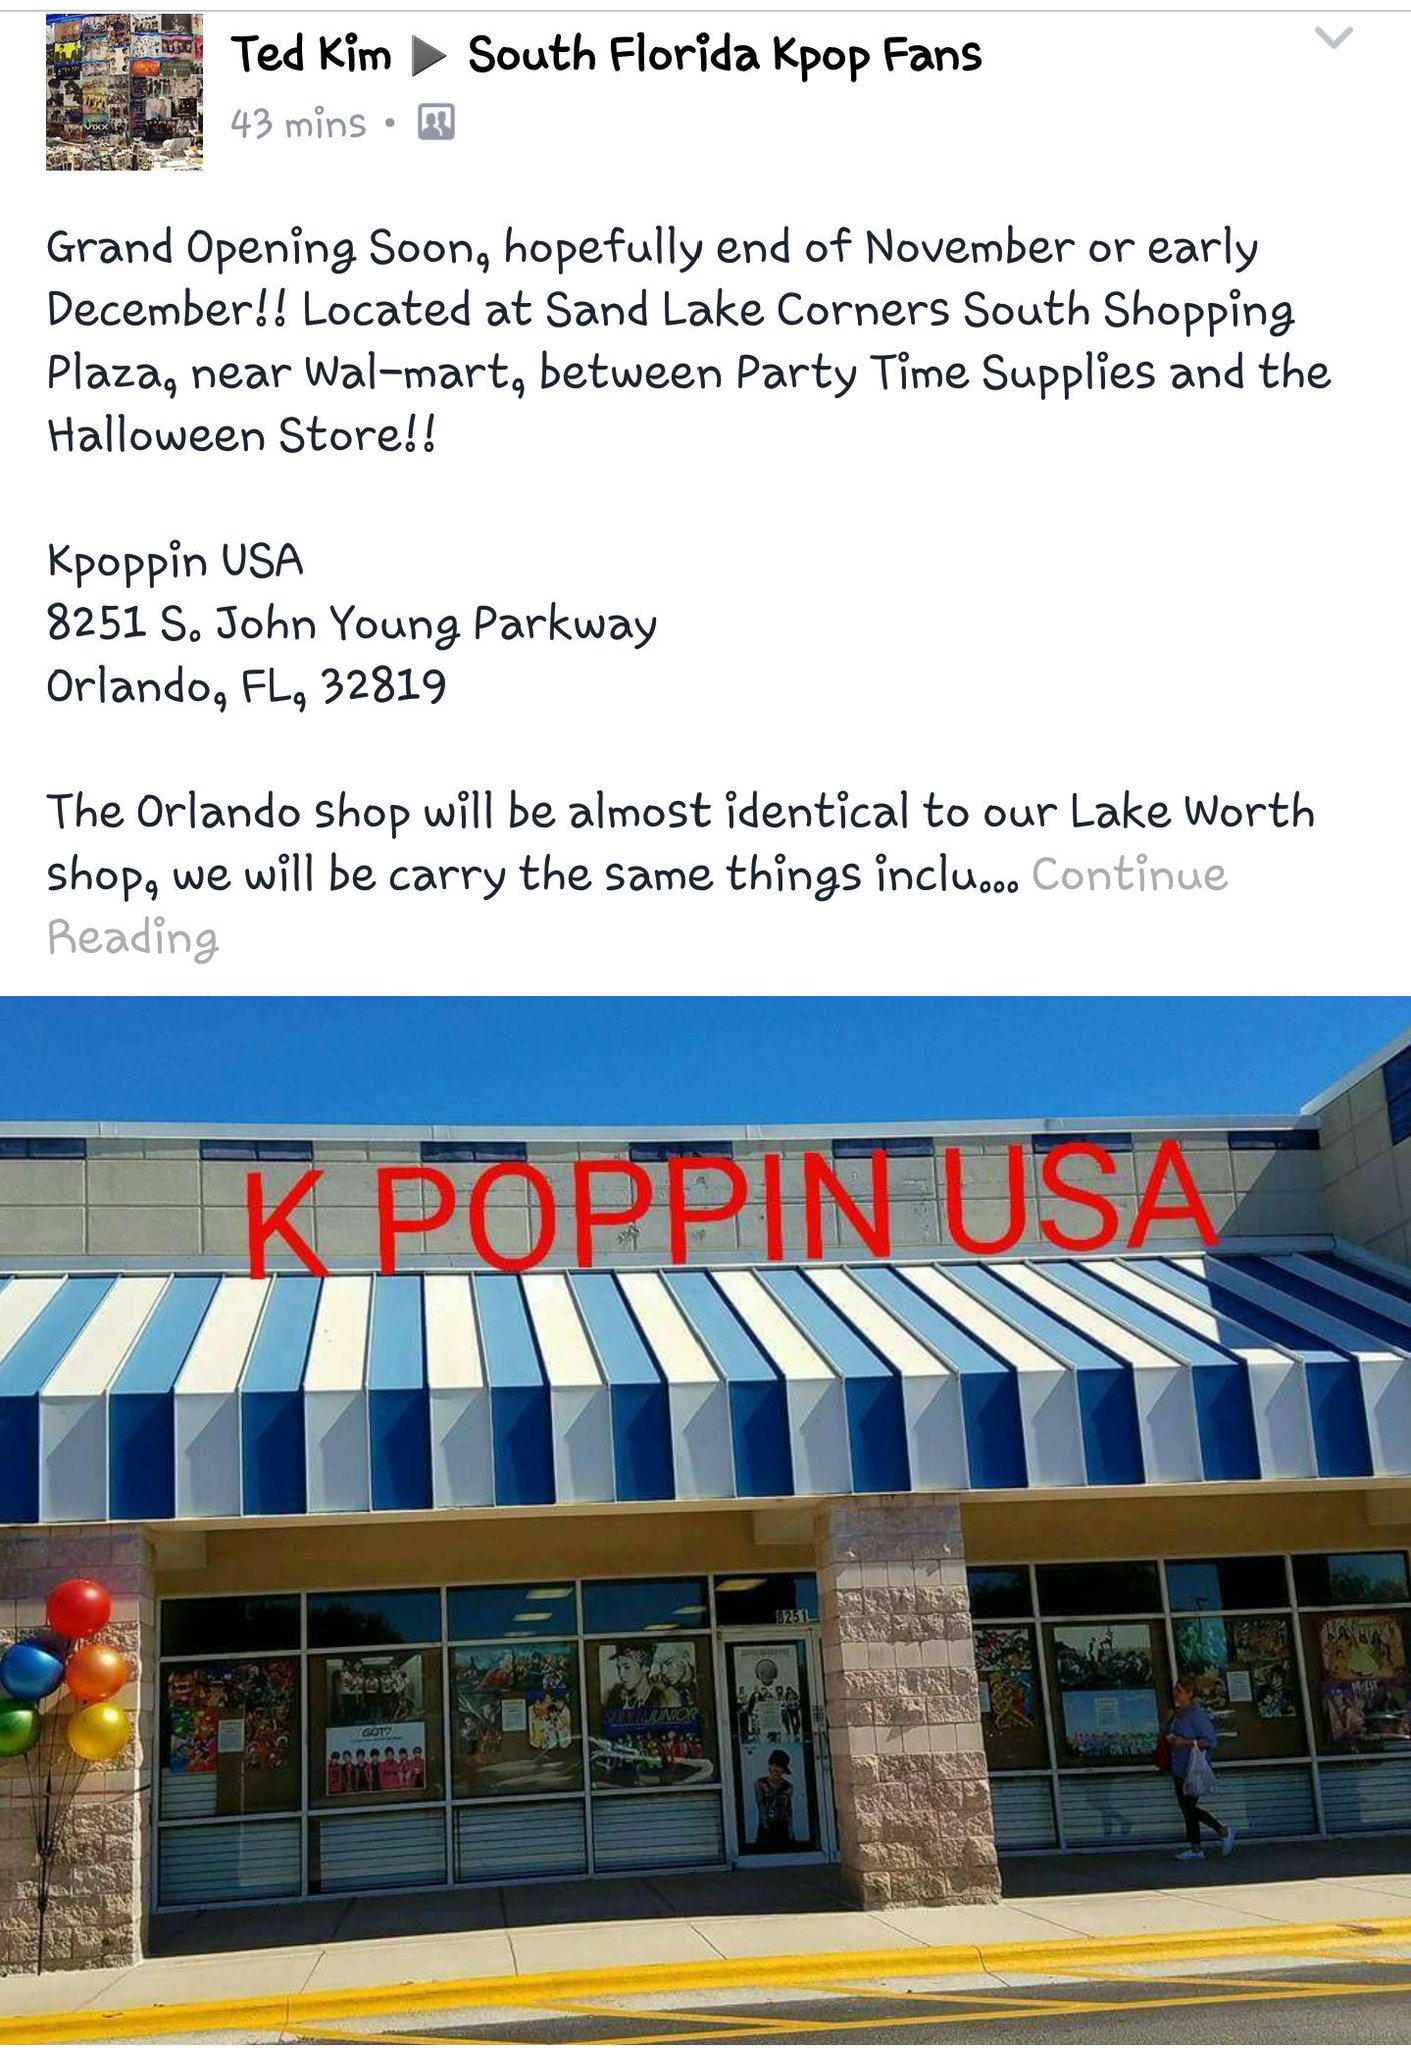 South Florida Kpop on Twitter: